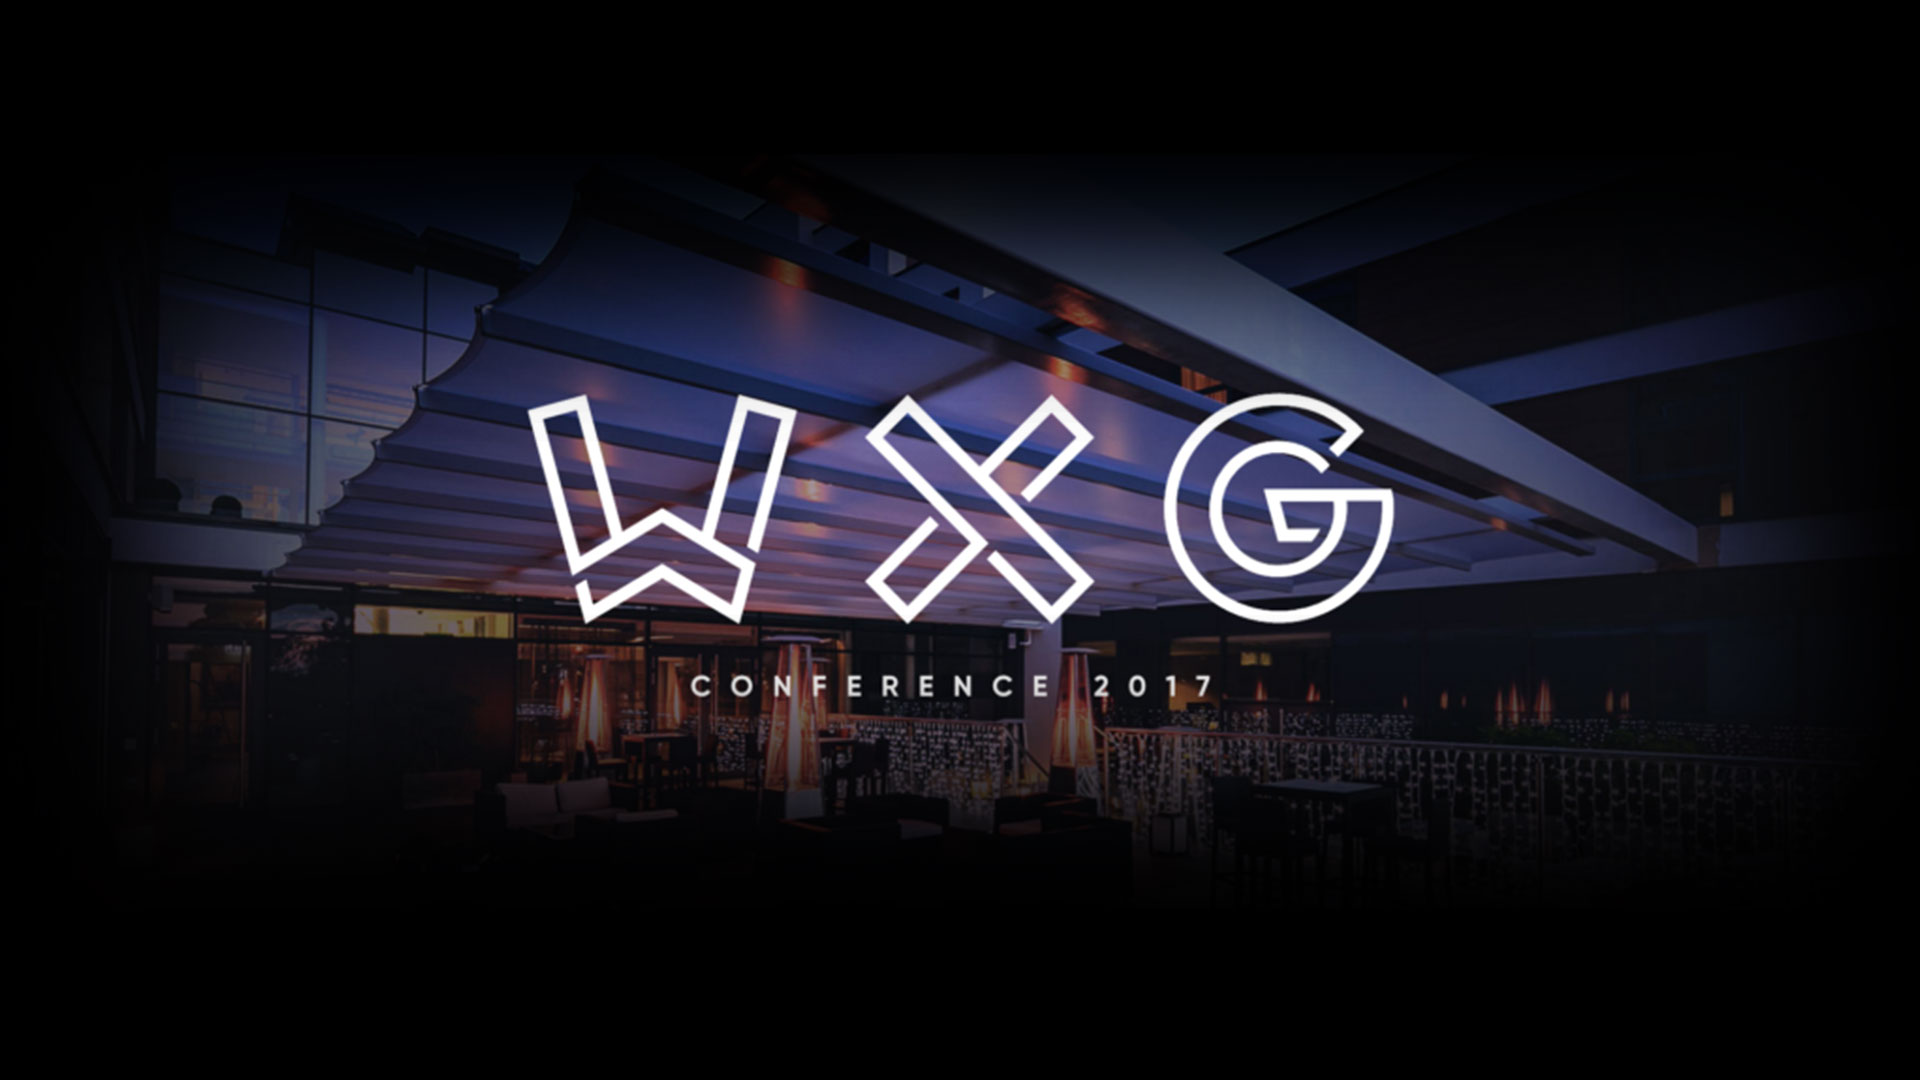 Branding, technology and content insights from WXG 2017